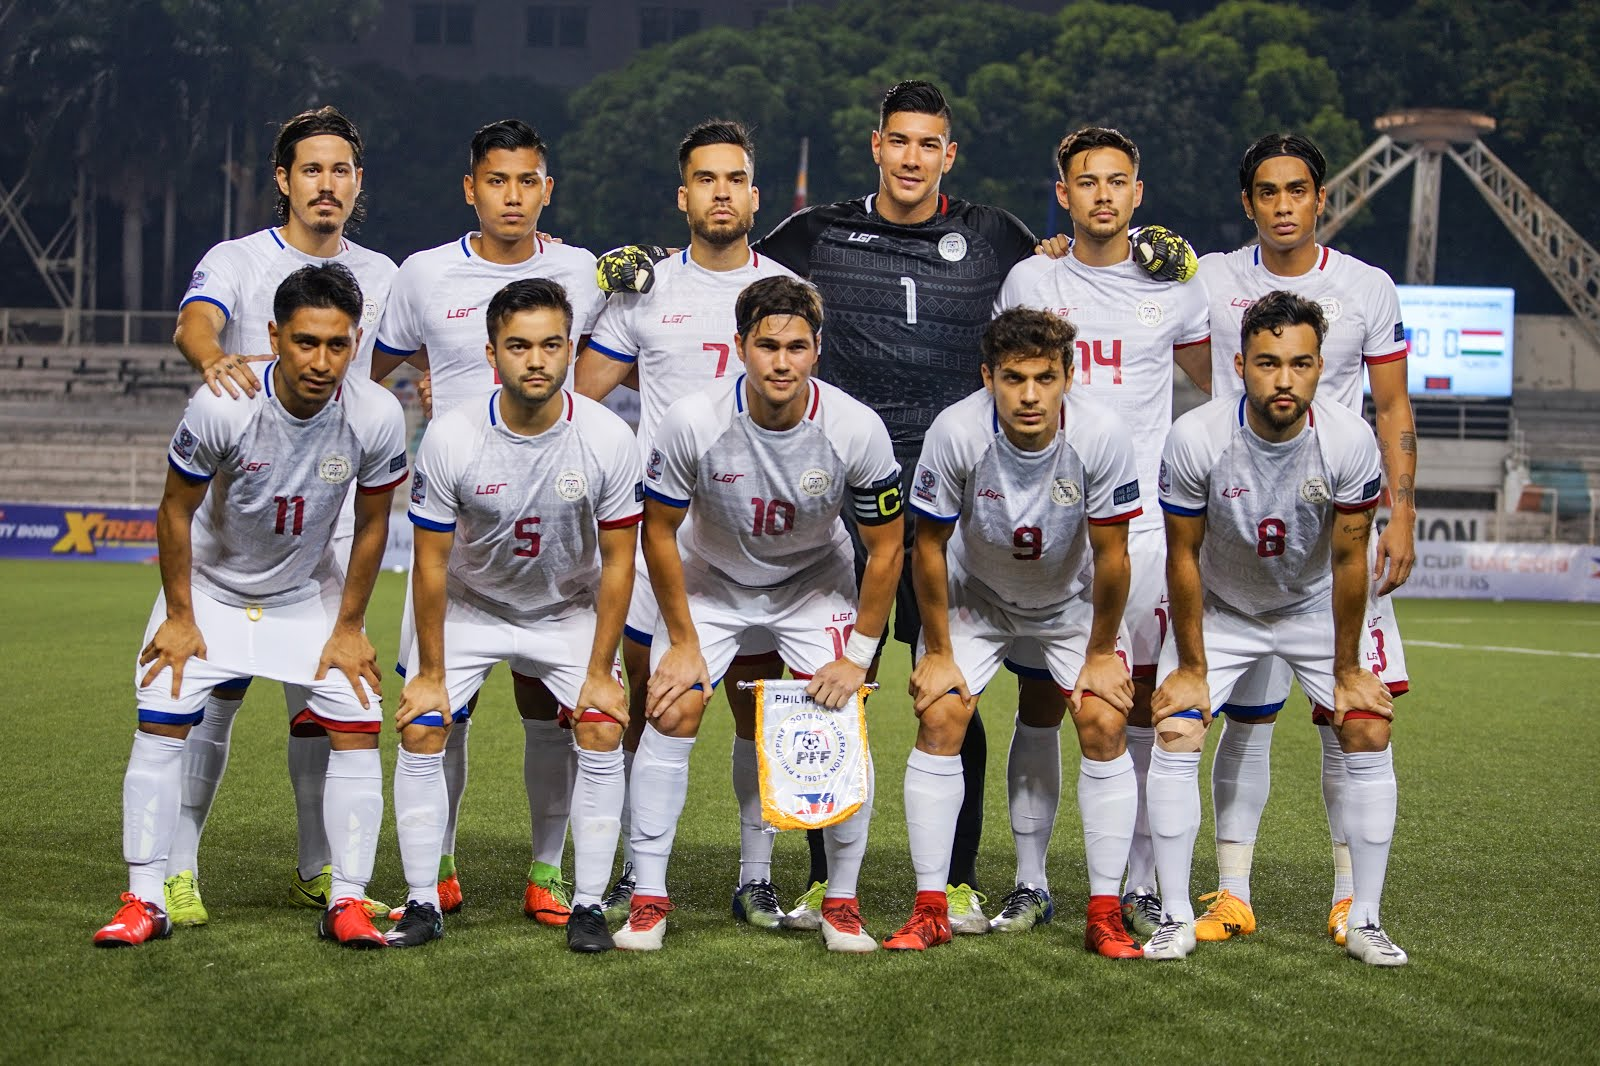 Azkals grouped with South Korea, China, Kyrgyzstan in 2019 AFC Asian Cup